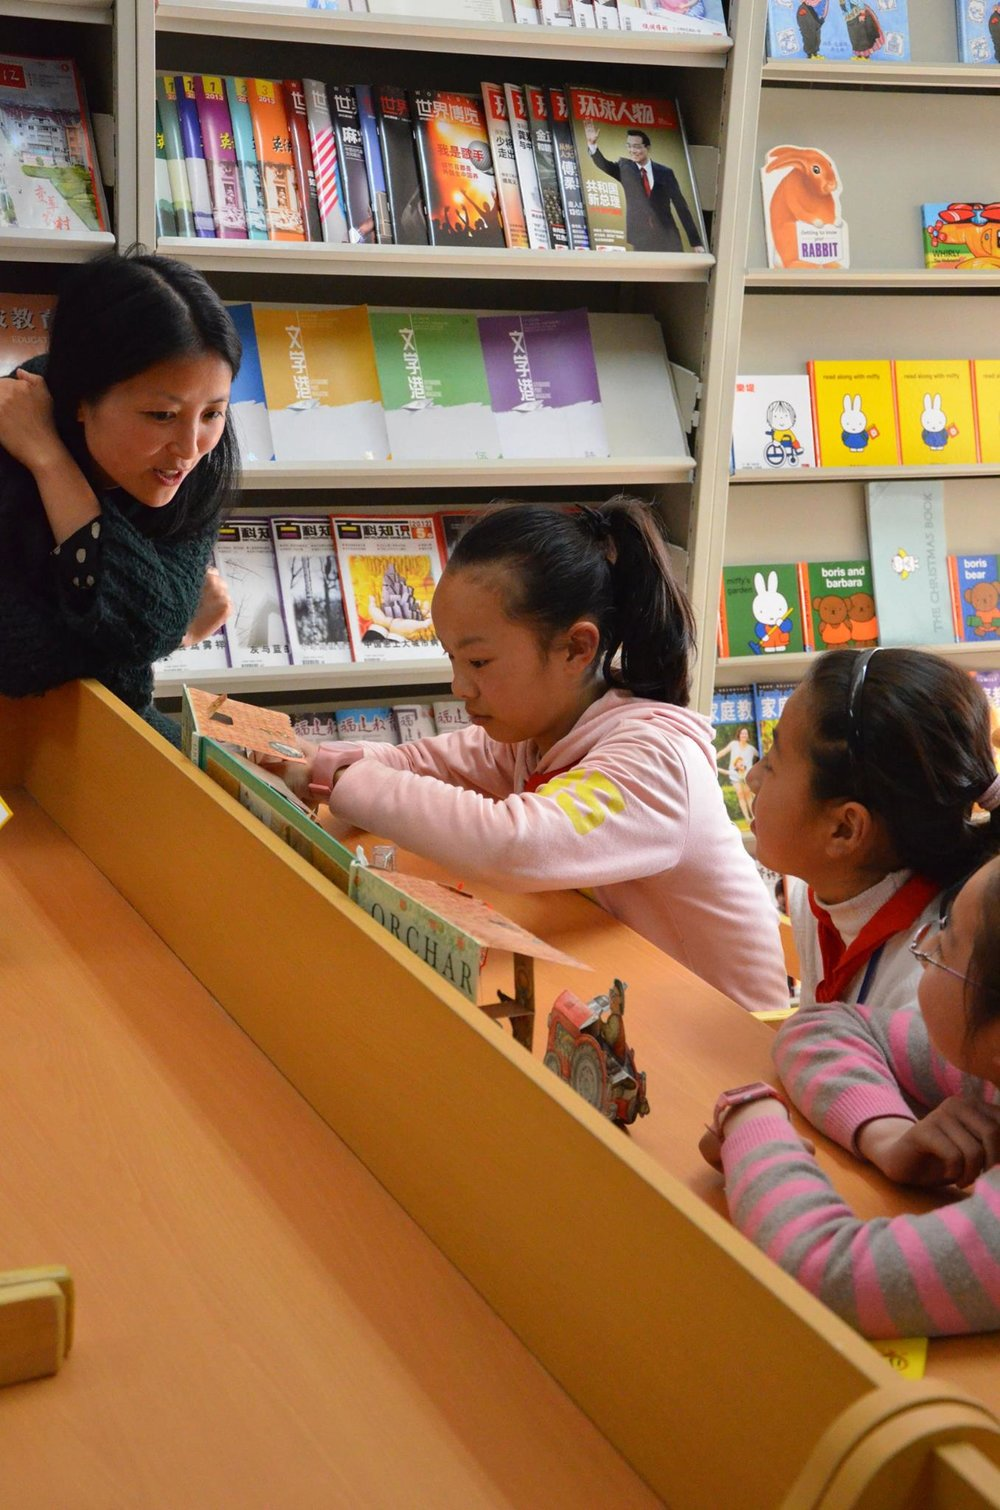 Visiting the library in Yuyao City where the children are reading the books that we donated. They are so enthusiastic about the different books they can read, and they told me that they  are so looking forward to Friday afternoon when they can come to the library to read more. It makes me happy to see that they are enjoying the books so much and at the same time gain knowledge.  WE NEED MORE GREAT BOOKS FOR CHILDREN! FOR THIS REASON I STARTED TO  WRITE AND ILLUSTRATE MY OWN BOOKS IN 2018.